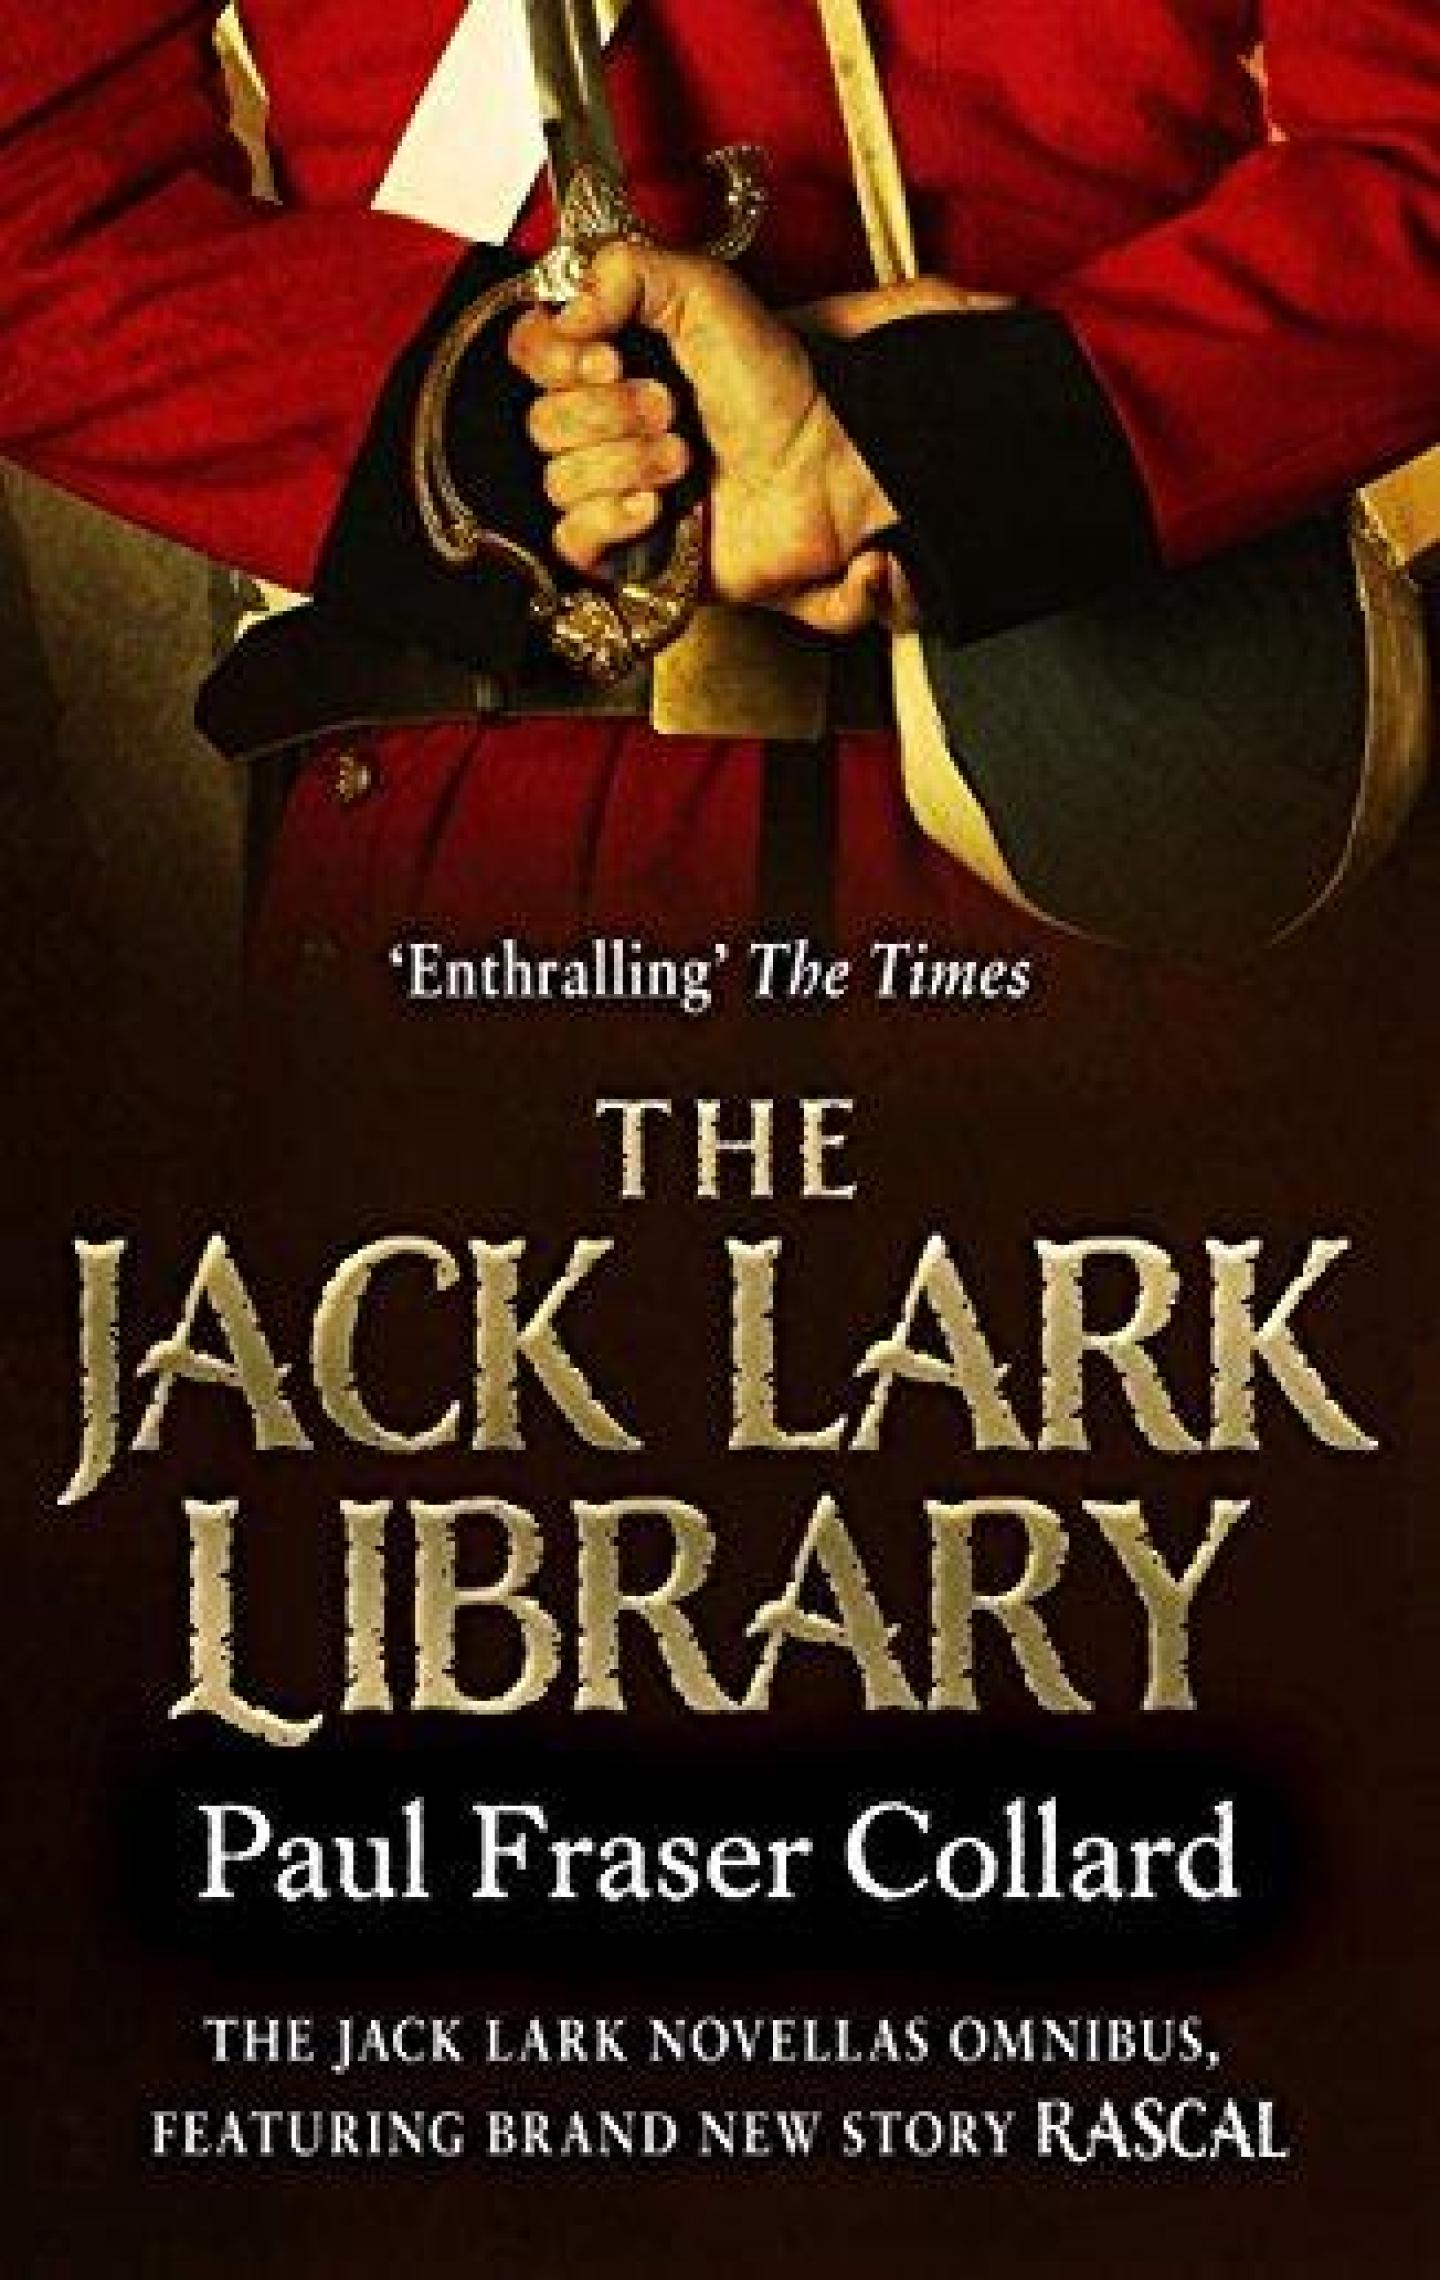 The Jack Lark Library